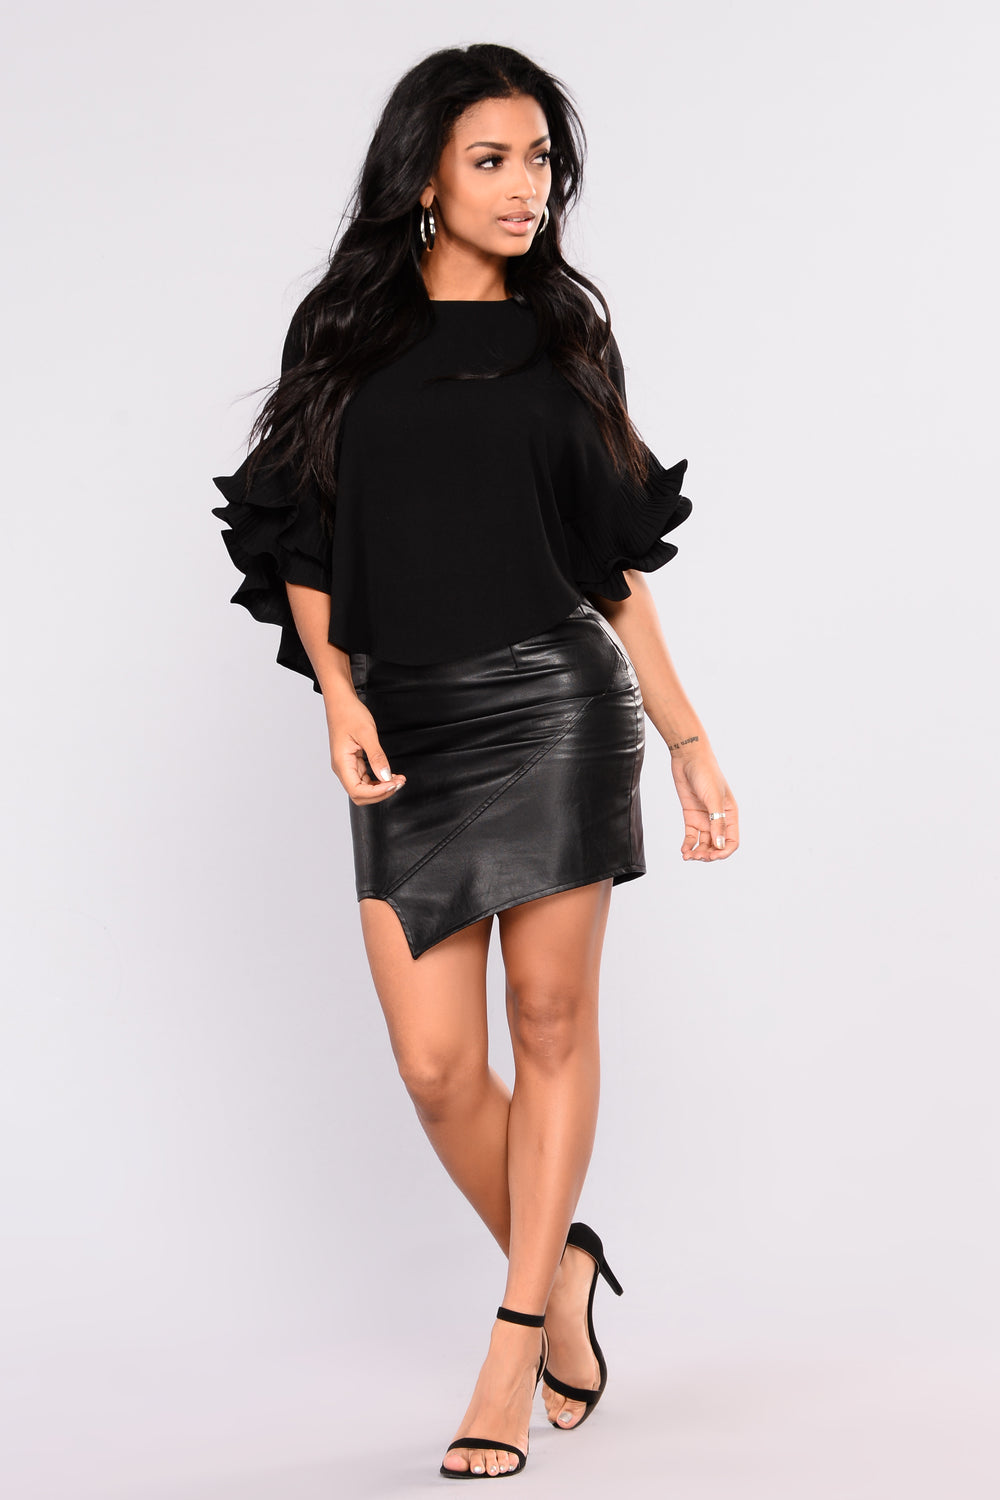 Mimosa Ruffle Top - Black